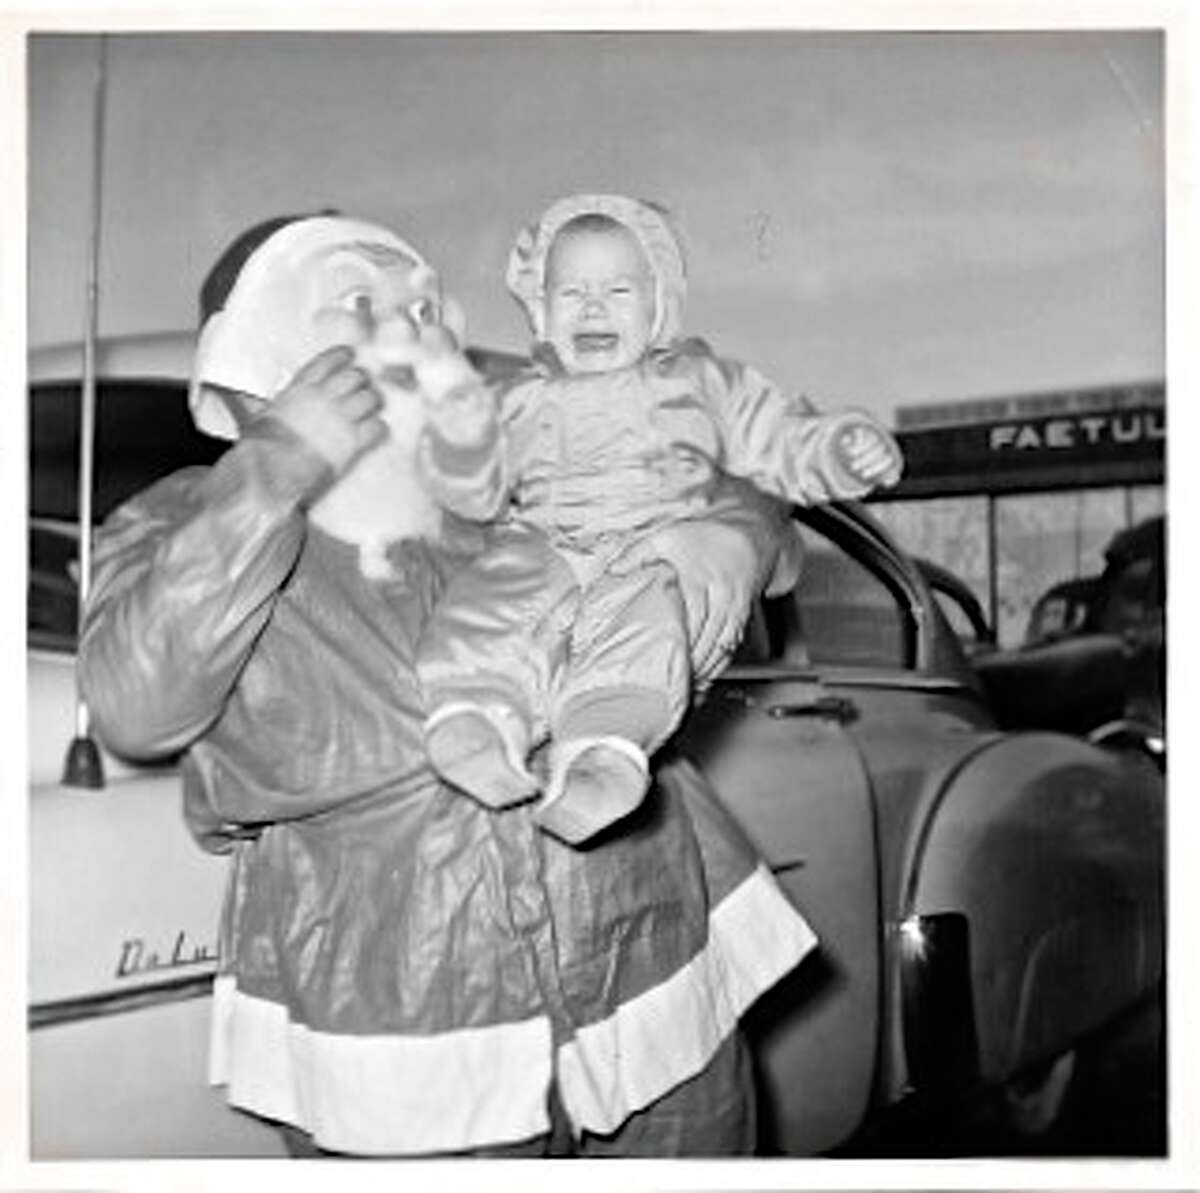 My mom took this photo of me in 1954, so the tradition of thrusting small children into the arms of strange Santas goes back at least that far. ;) And based on the film, A Christmas Story, it was happening in the 40s too. My dad was a Navy pilot flying anti-submarine missions during the Korean Conflict. One of the officers had dressed up as Santa, in a cheap plastic suit with a horrible plastic mask, and was headed in to a Christmas party to give out gifts. Guess my mom couldn't wait for the actual party to have me meet Santa.